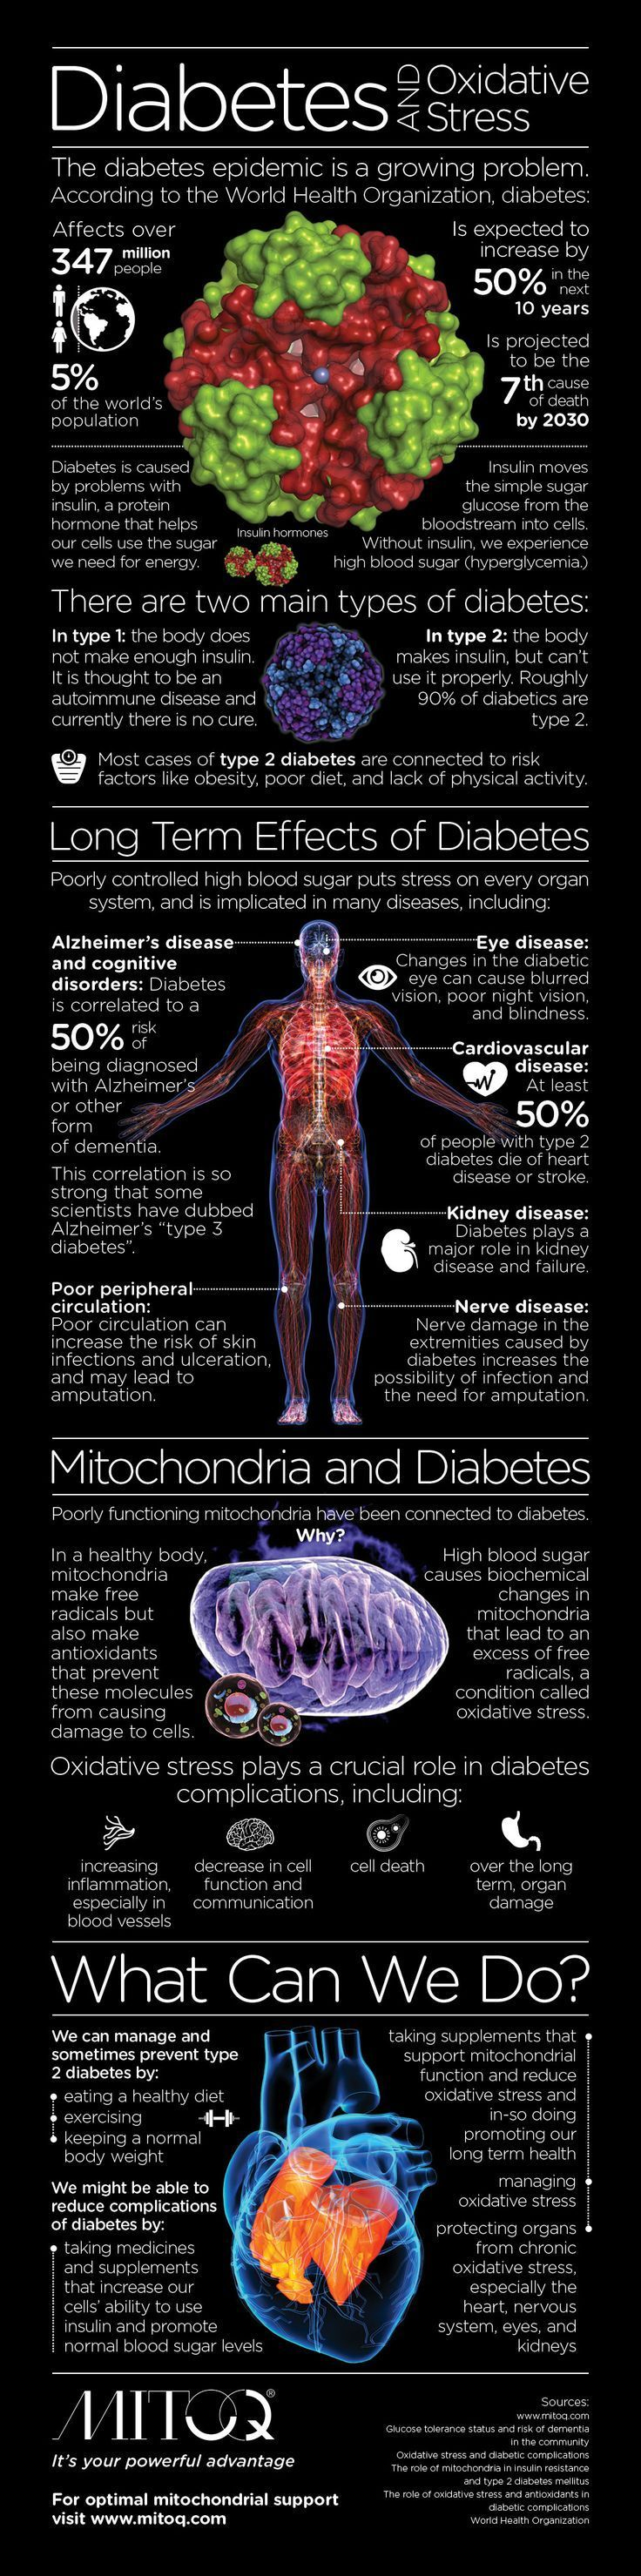 %http://7BDFWProtandim.com} Diabetes & Oxidative Stress - Reduce your oxidative stress by 40% in 30 days!